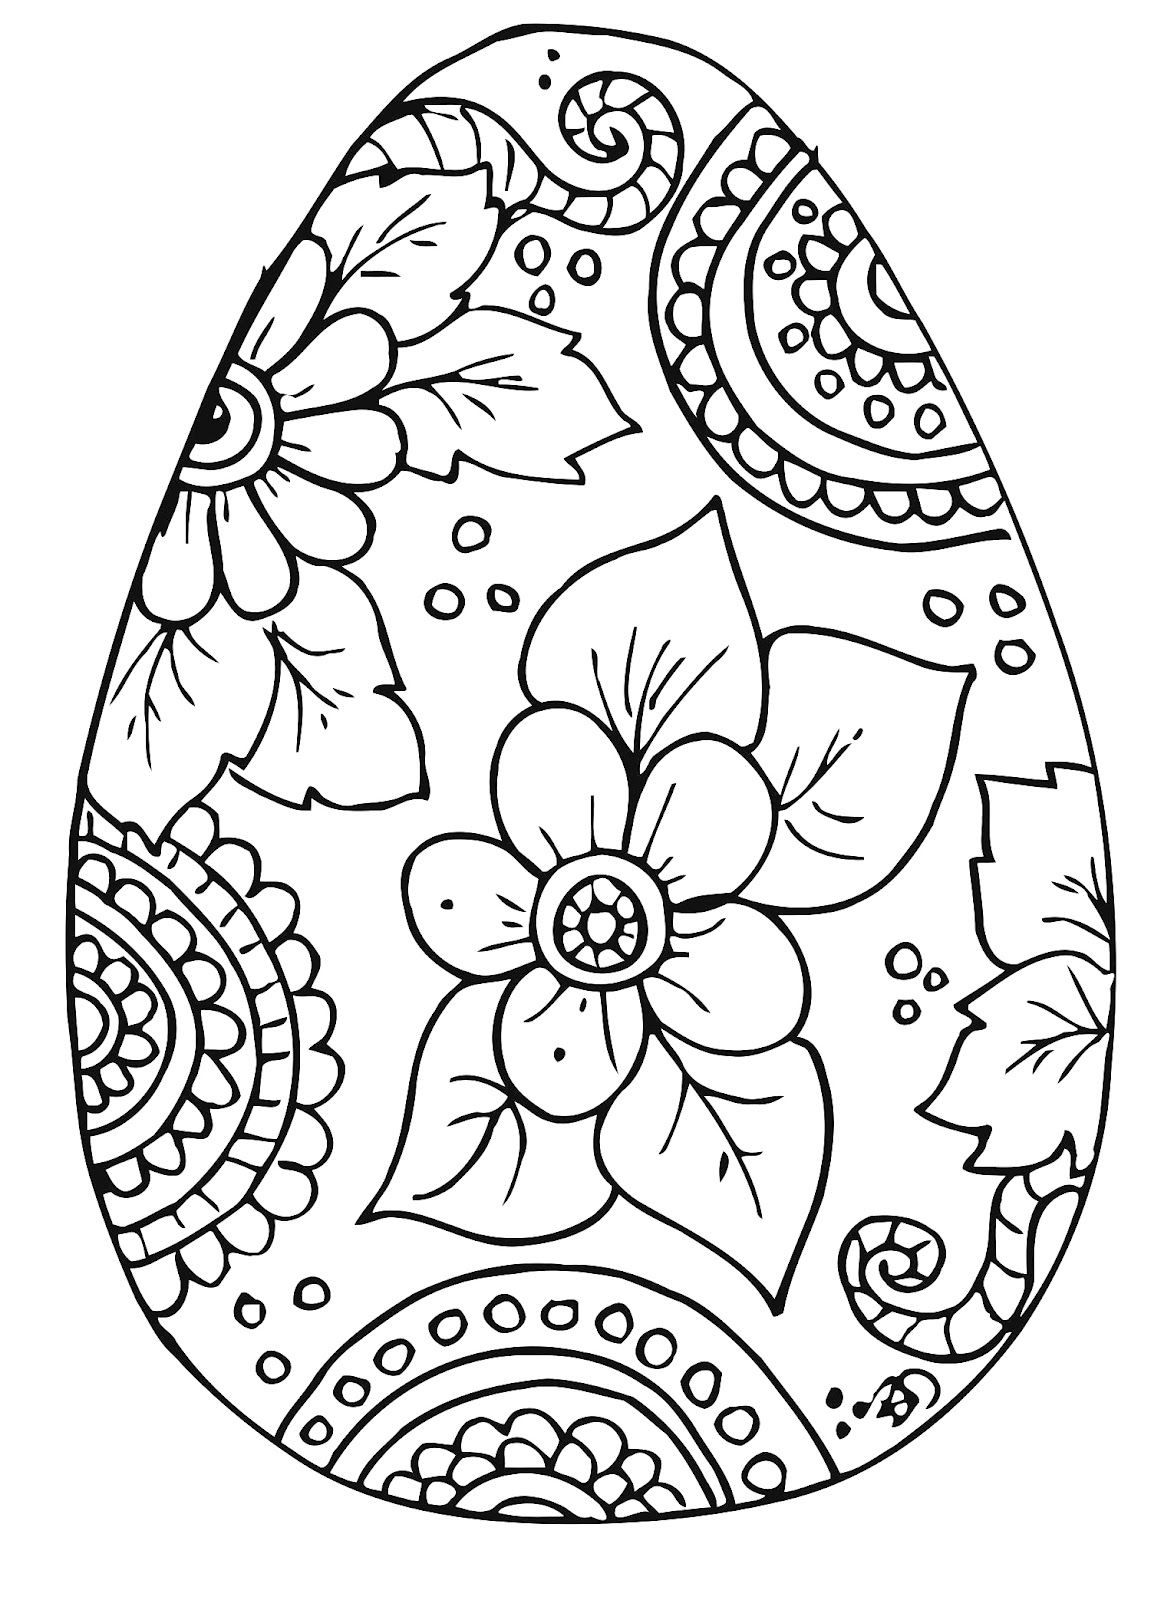 Easter egg colouring in page for parents